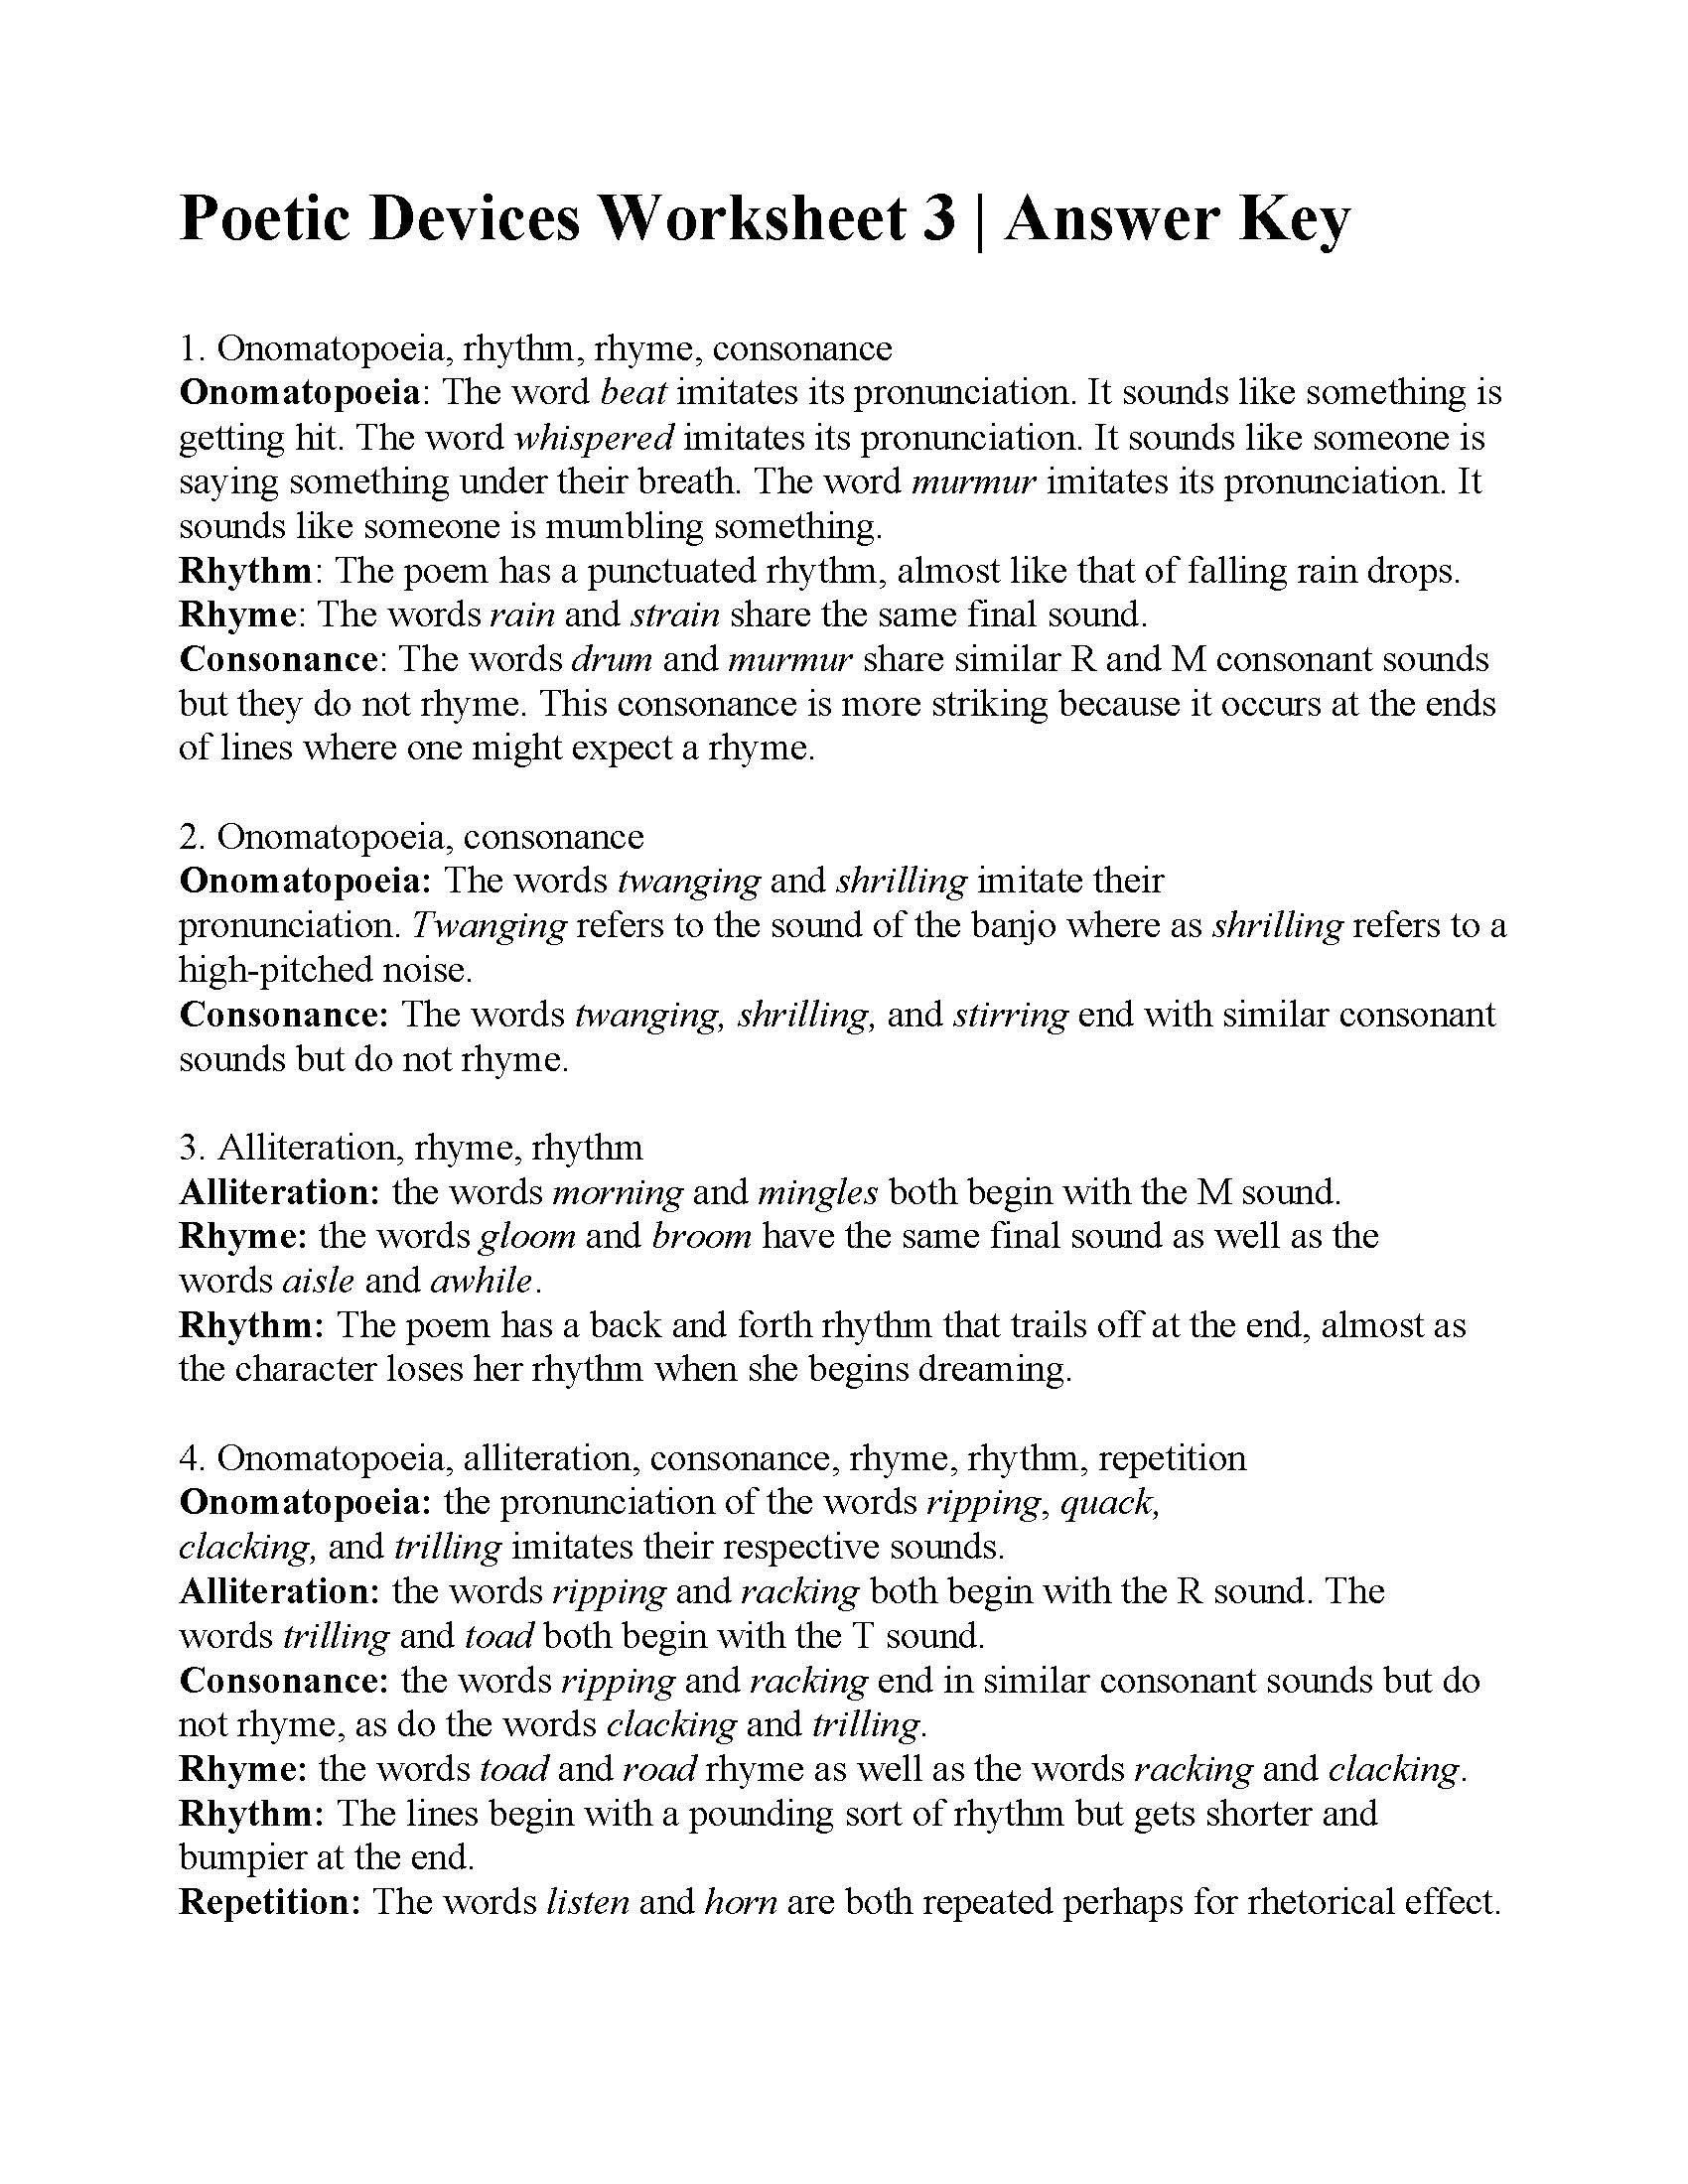 Literary Devices Worksheets Poetic Devices Worksheet 3